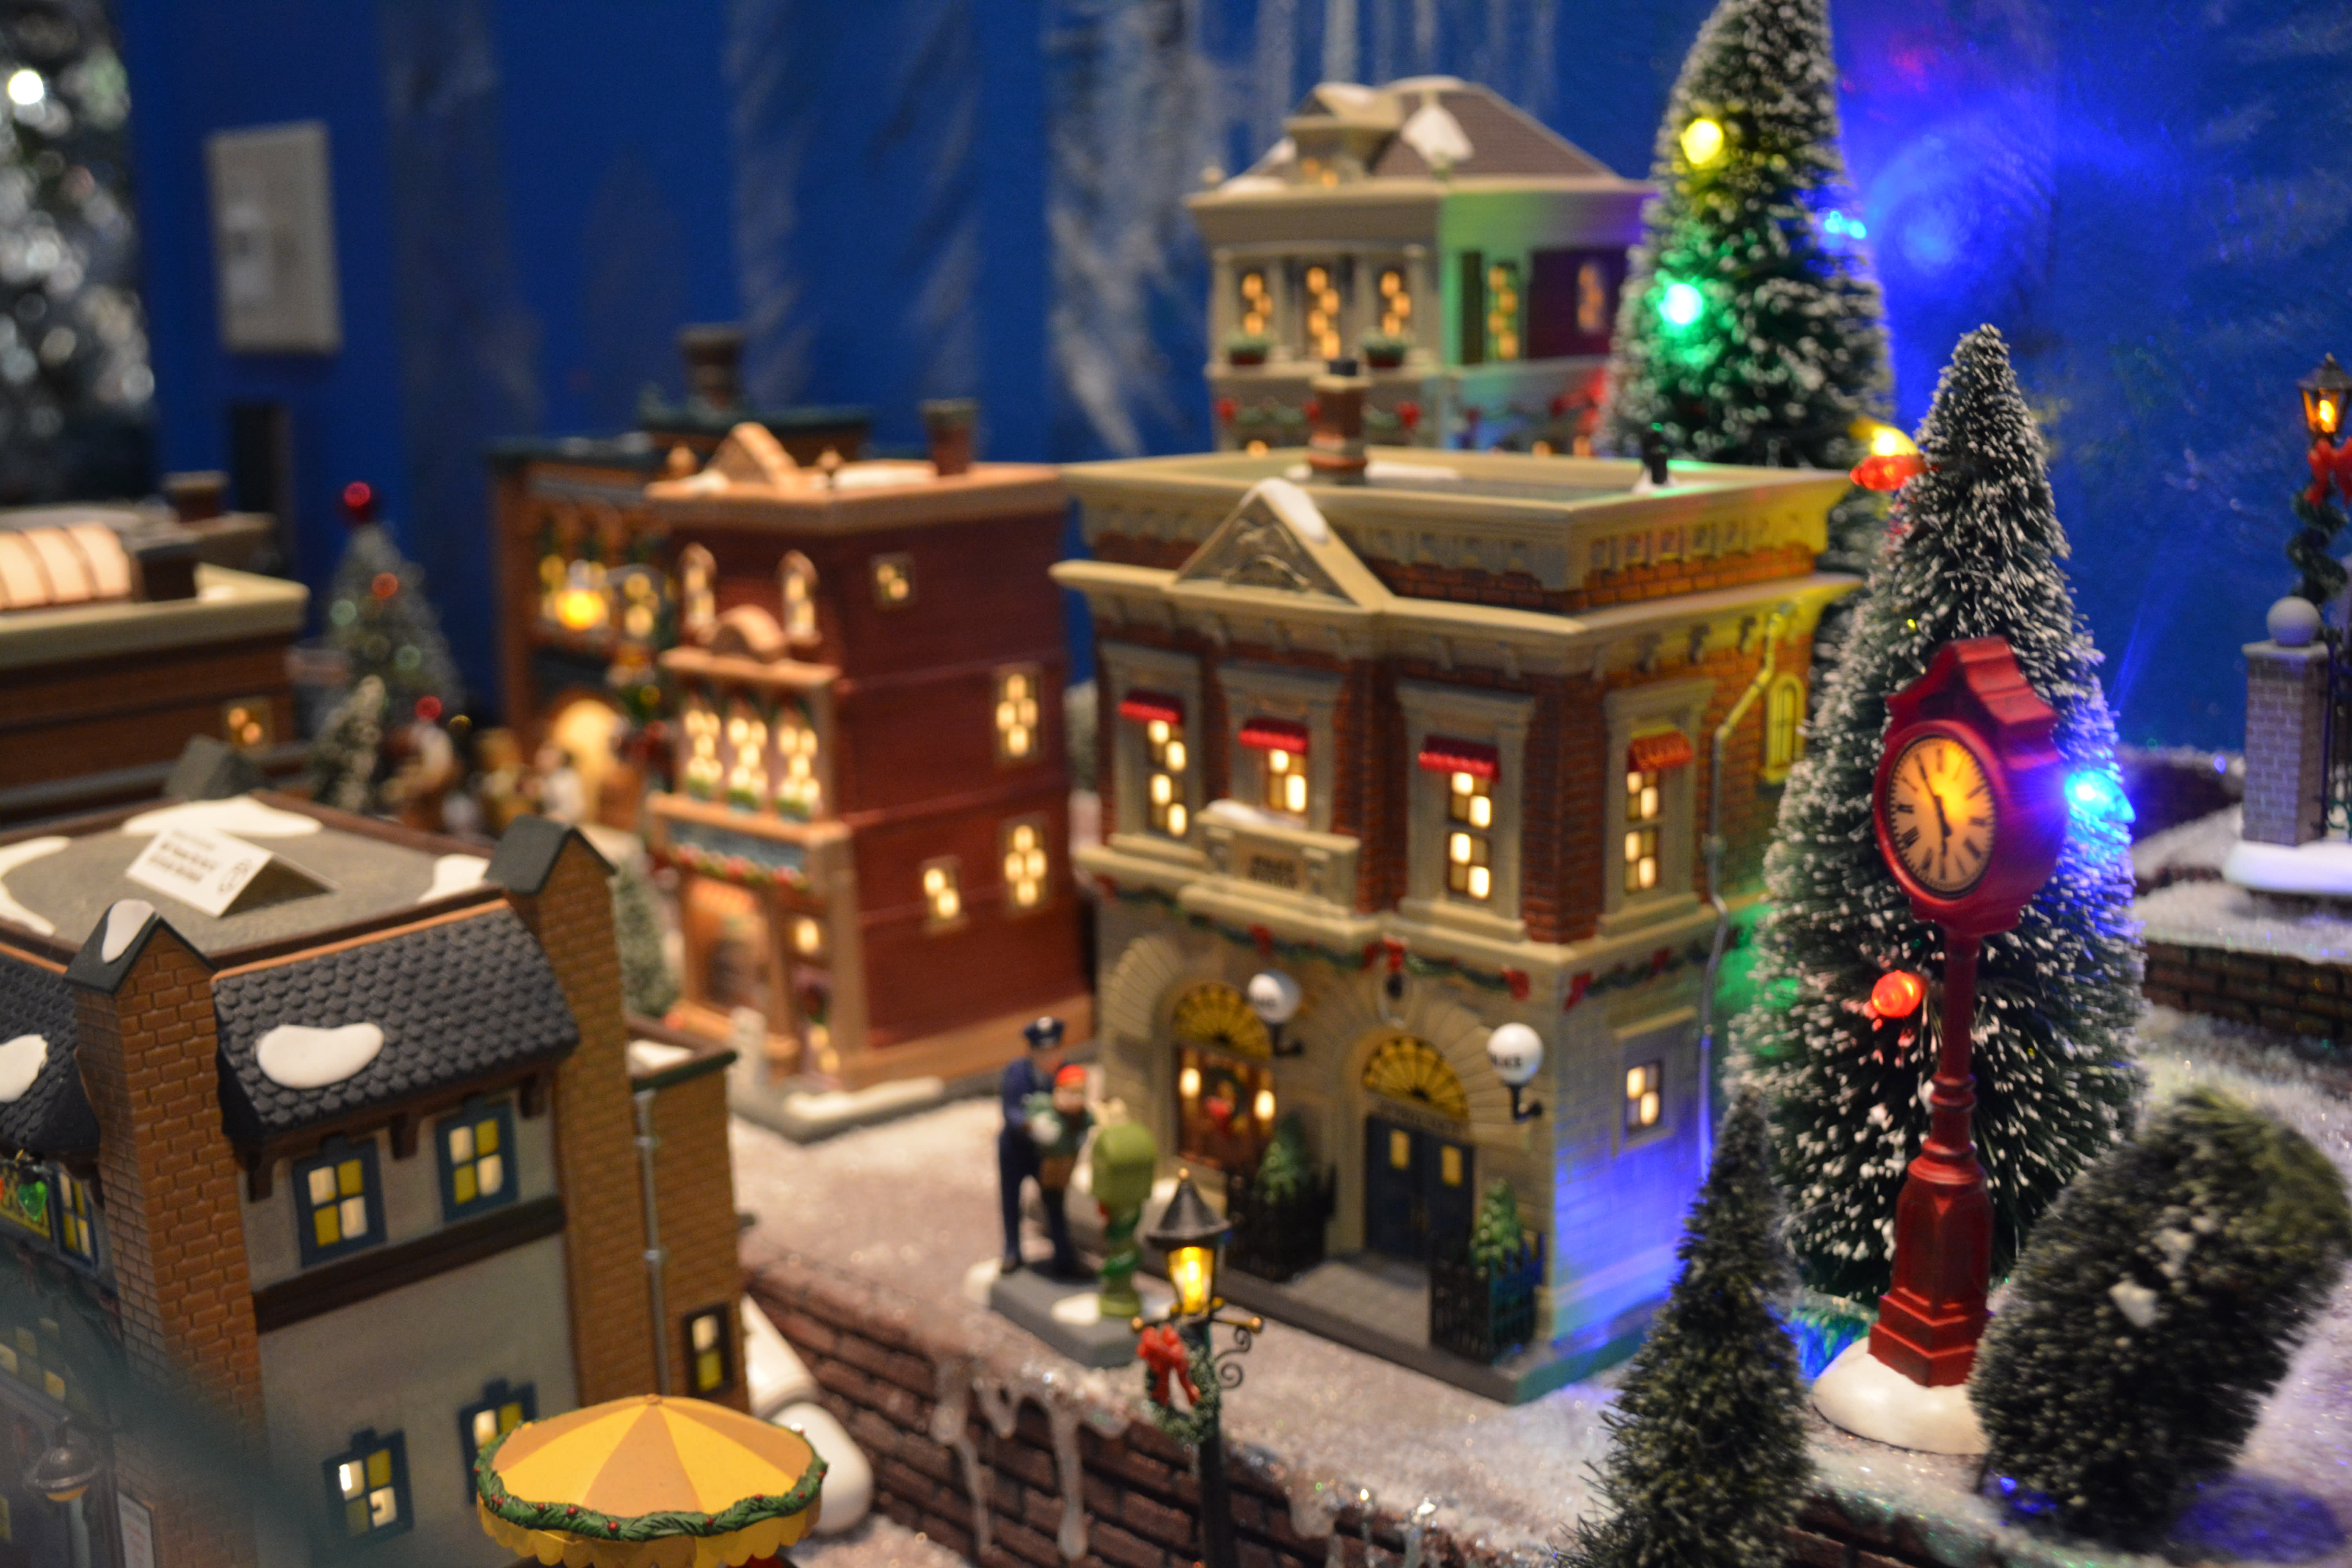 The Beautifully Built Christmas Villages at Good Things for All Seasons